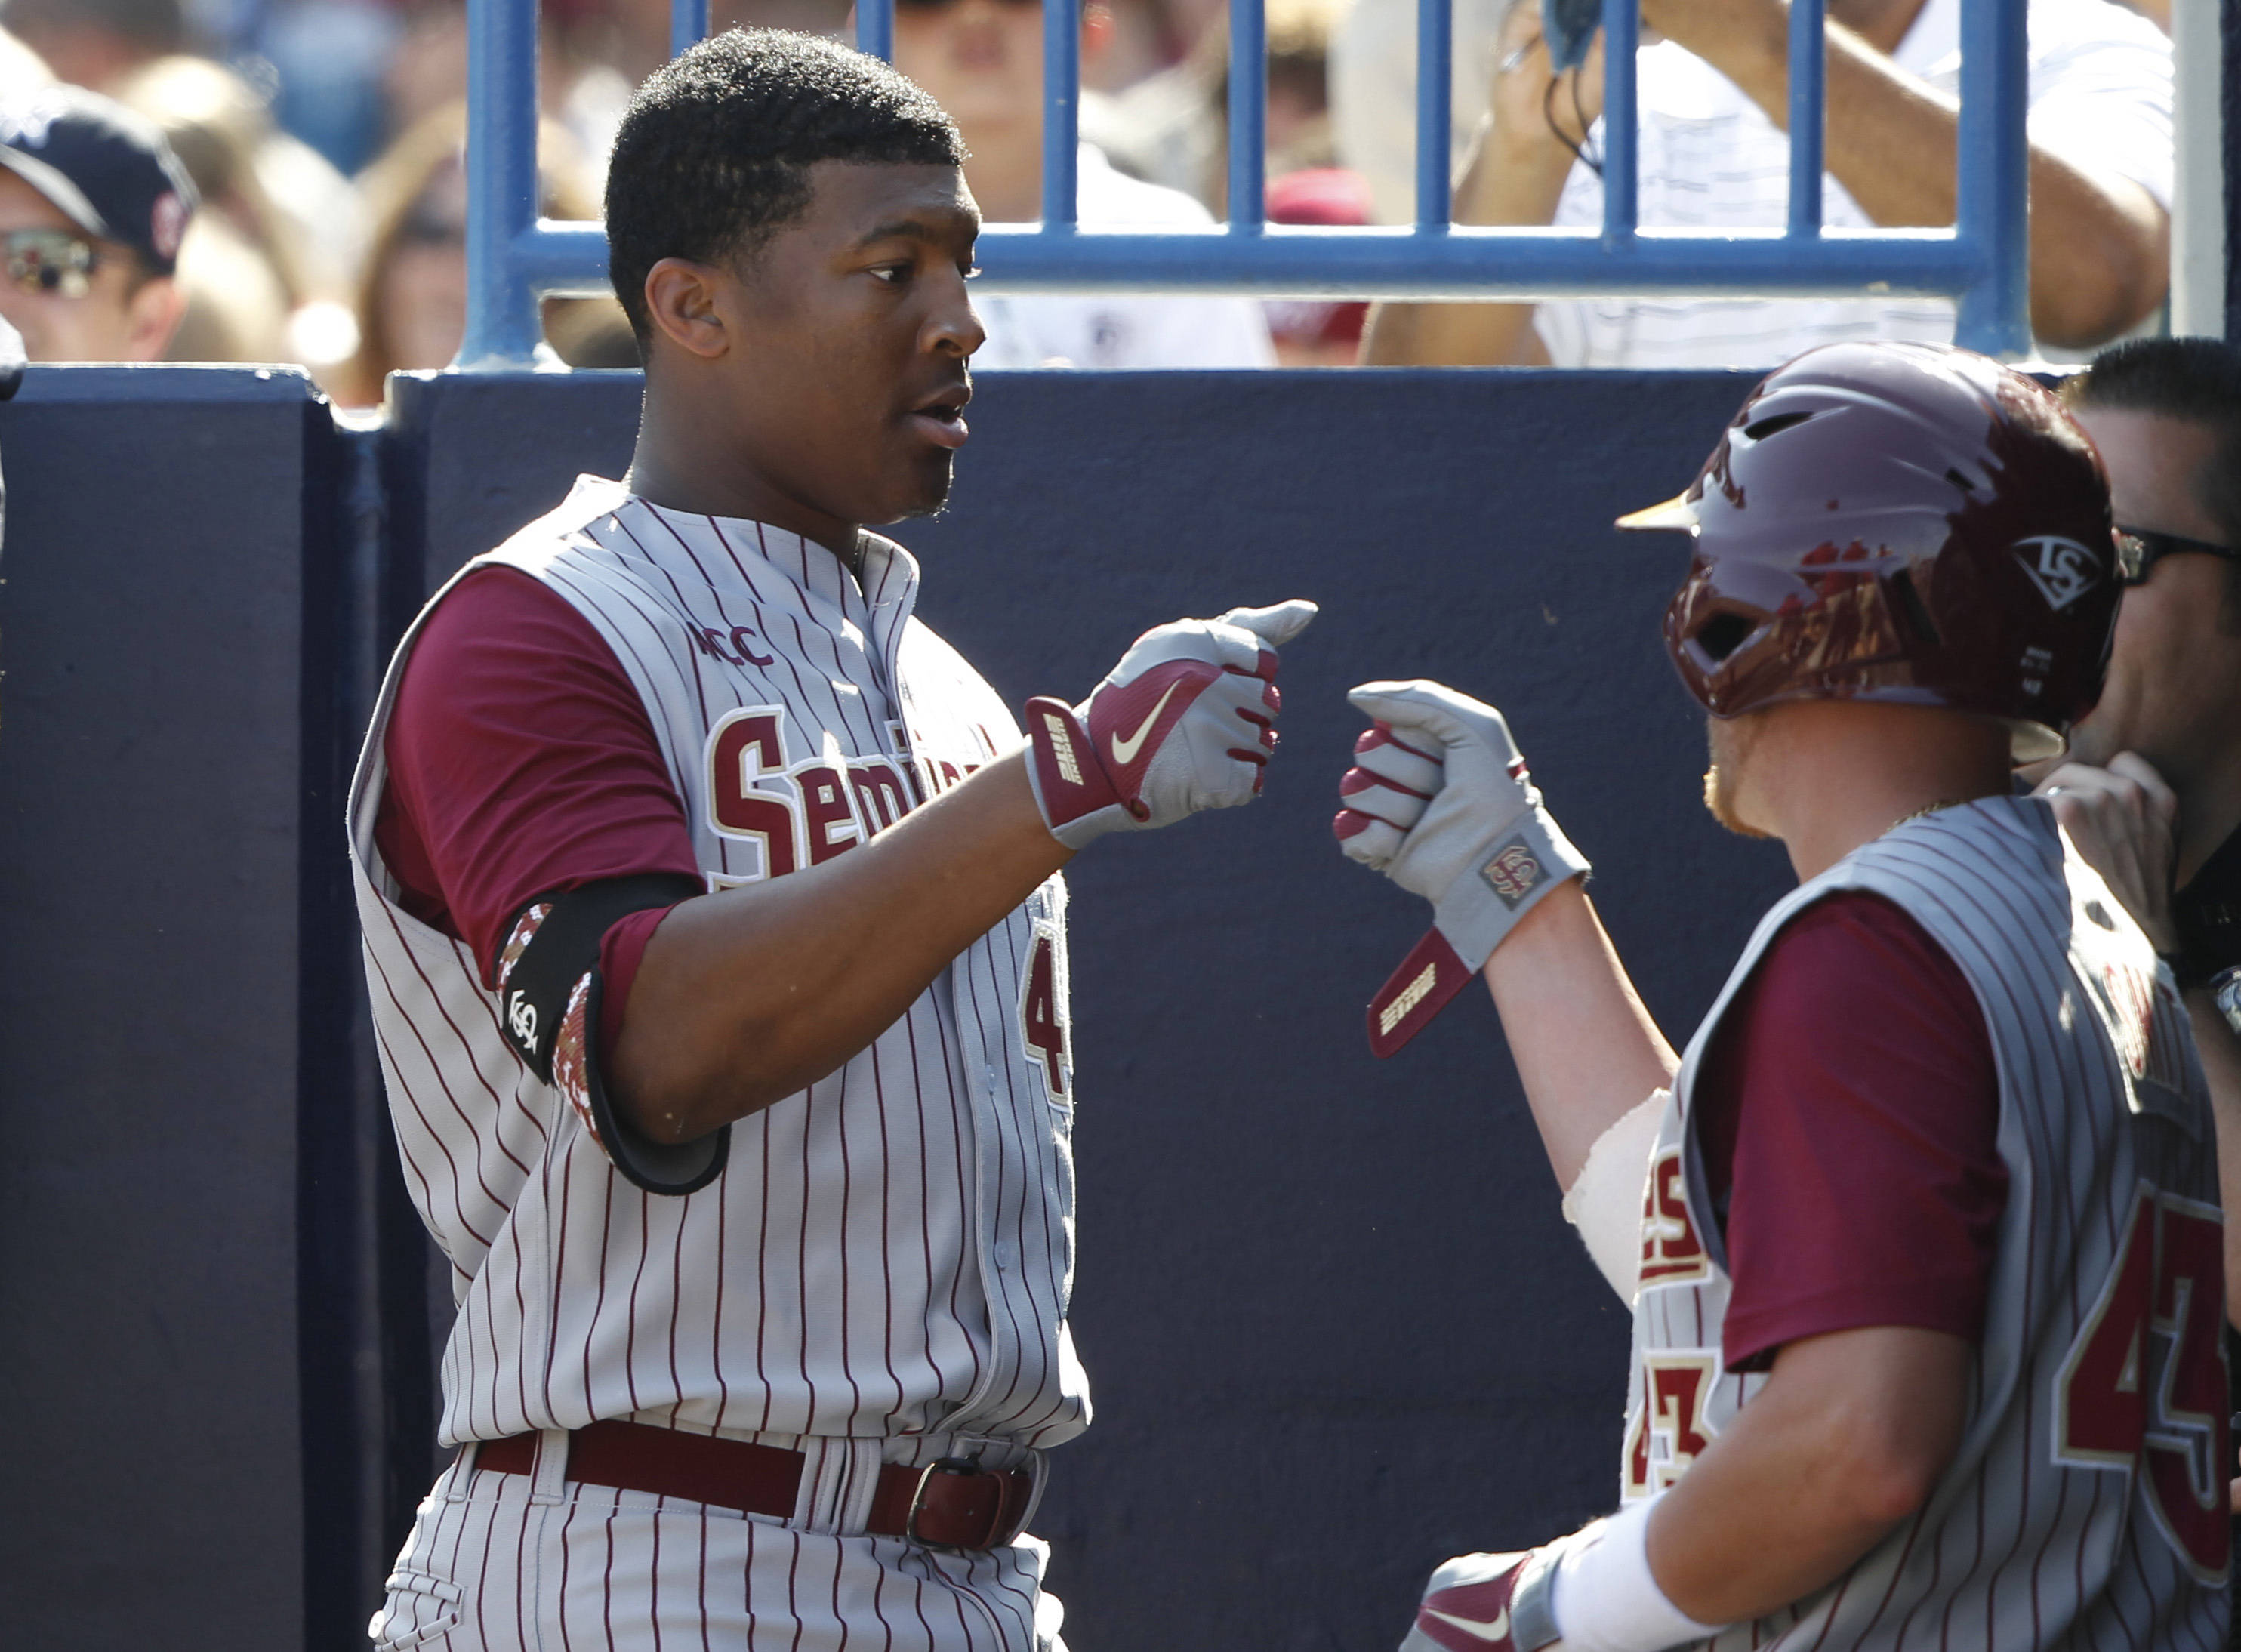 Feb 25, 2014; Tampa, FL, USA;  Florida State Seminoles pitcher/outfielder Jameis Winston (44) come back into the dugout after he batted during the sixth inning against the New York Yankees at George M. Steinbrenner Field. Mandatory Credit: Kim Klement-USA TODAY Sports